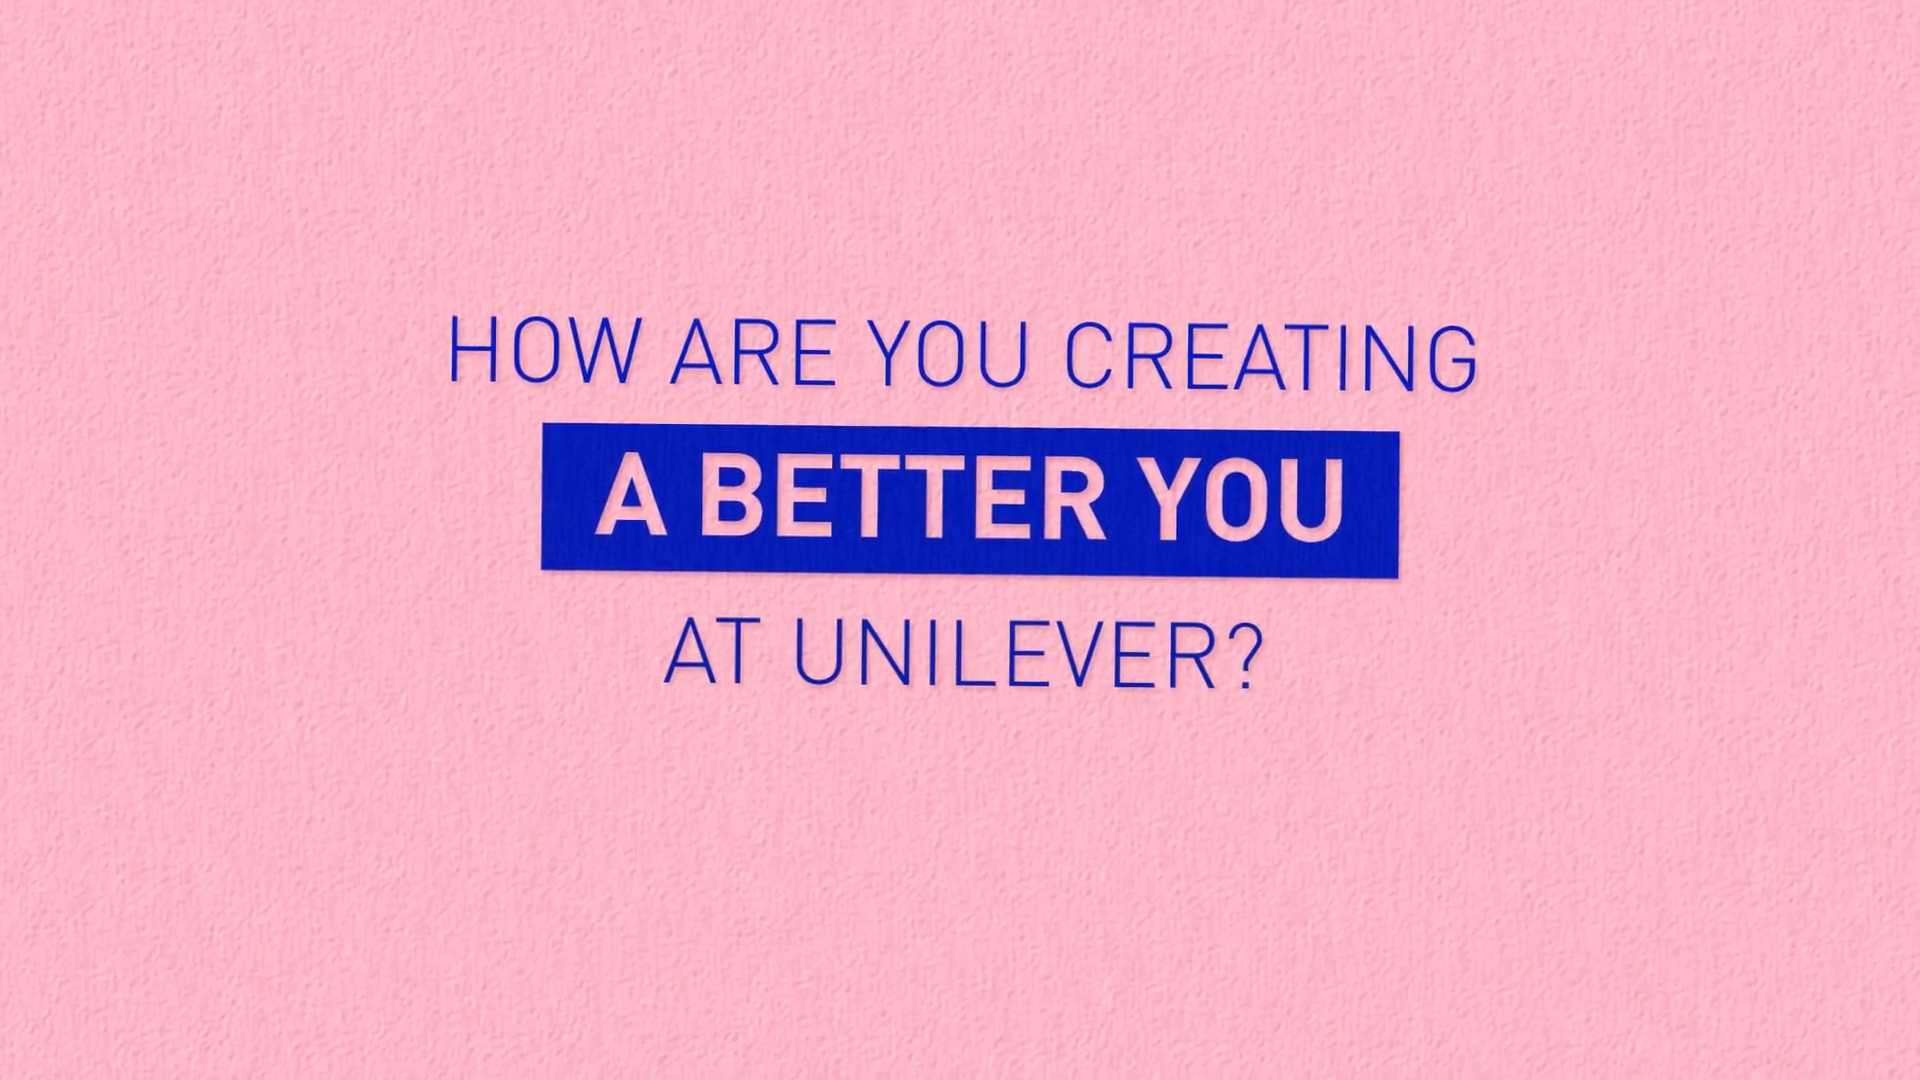 how are you creating a better you